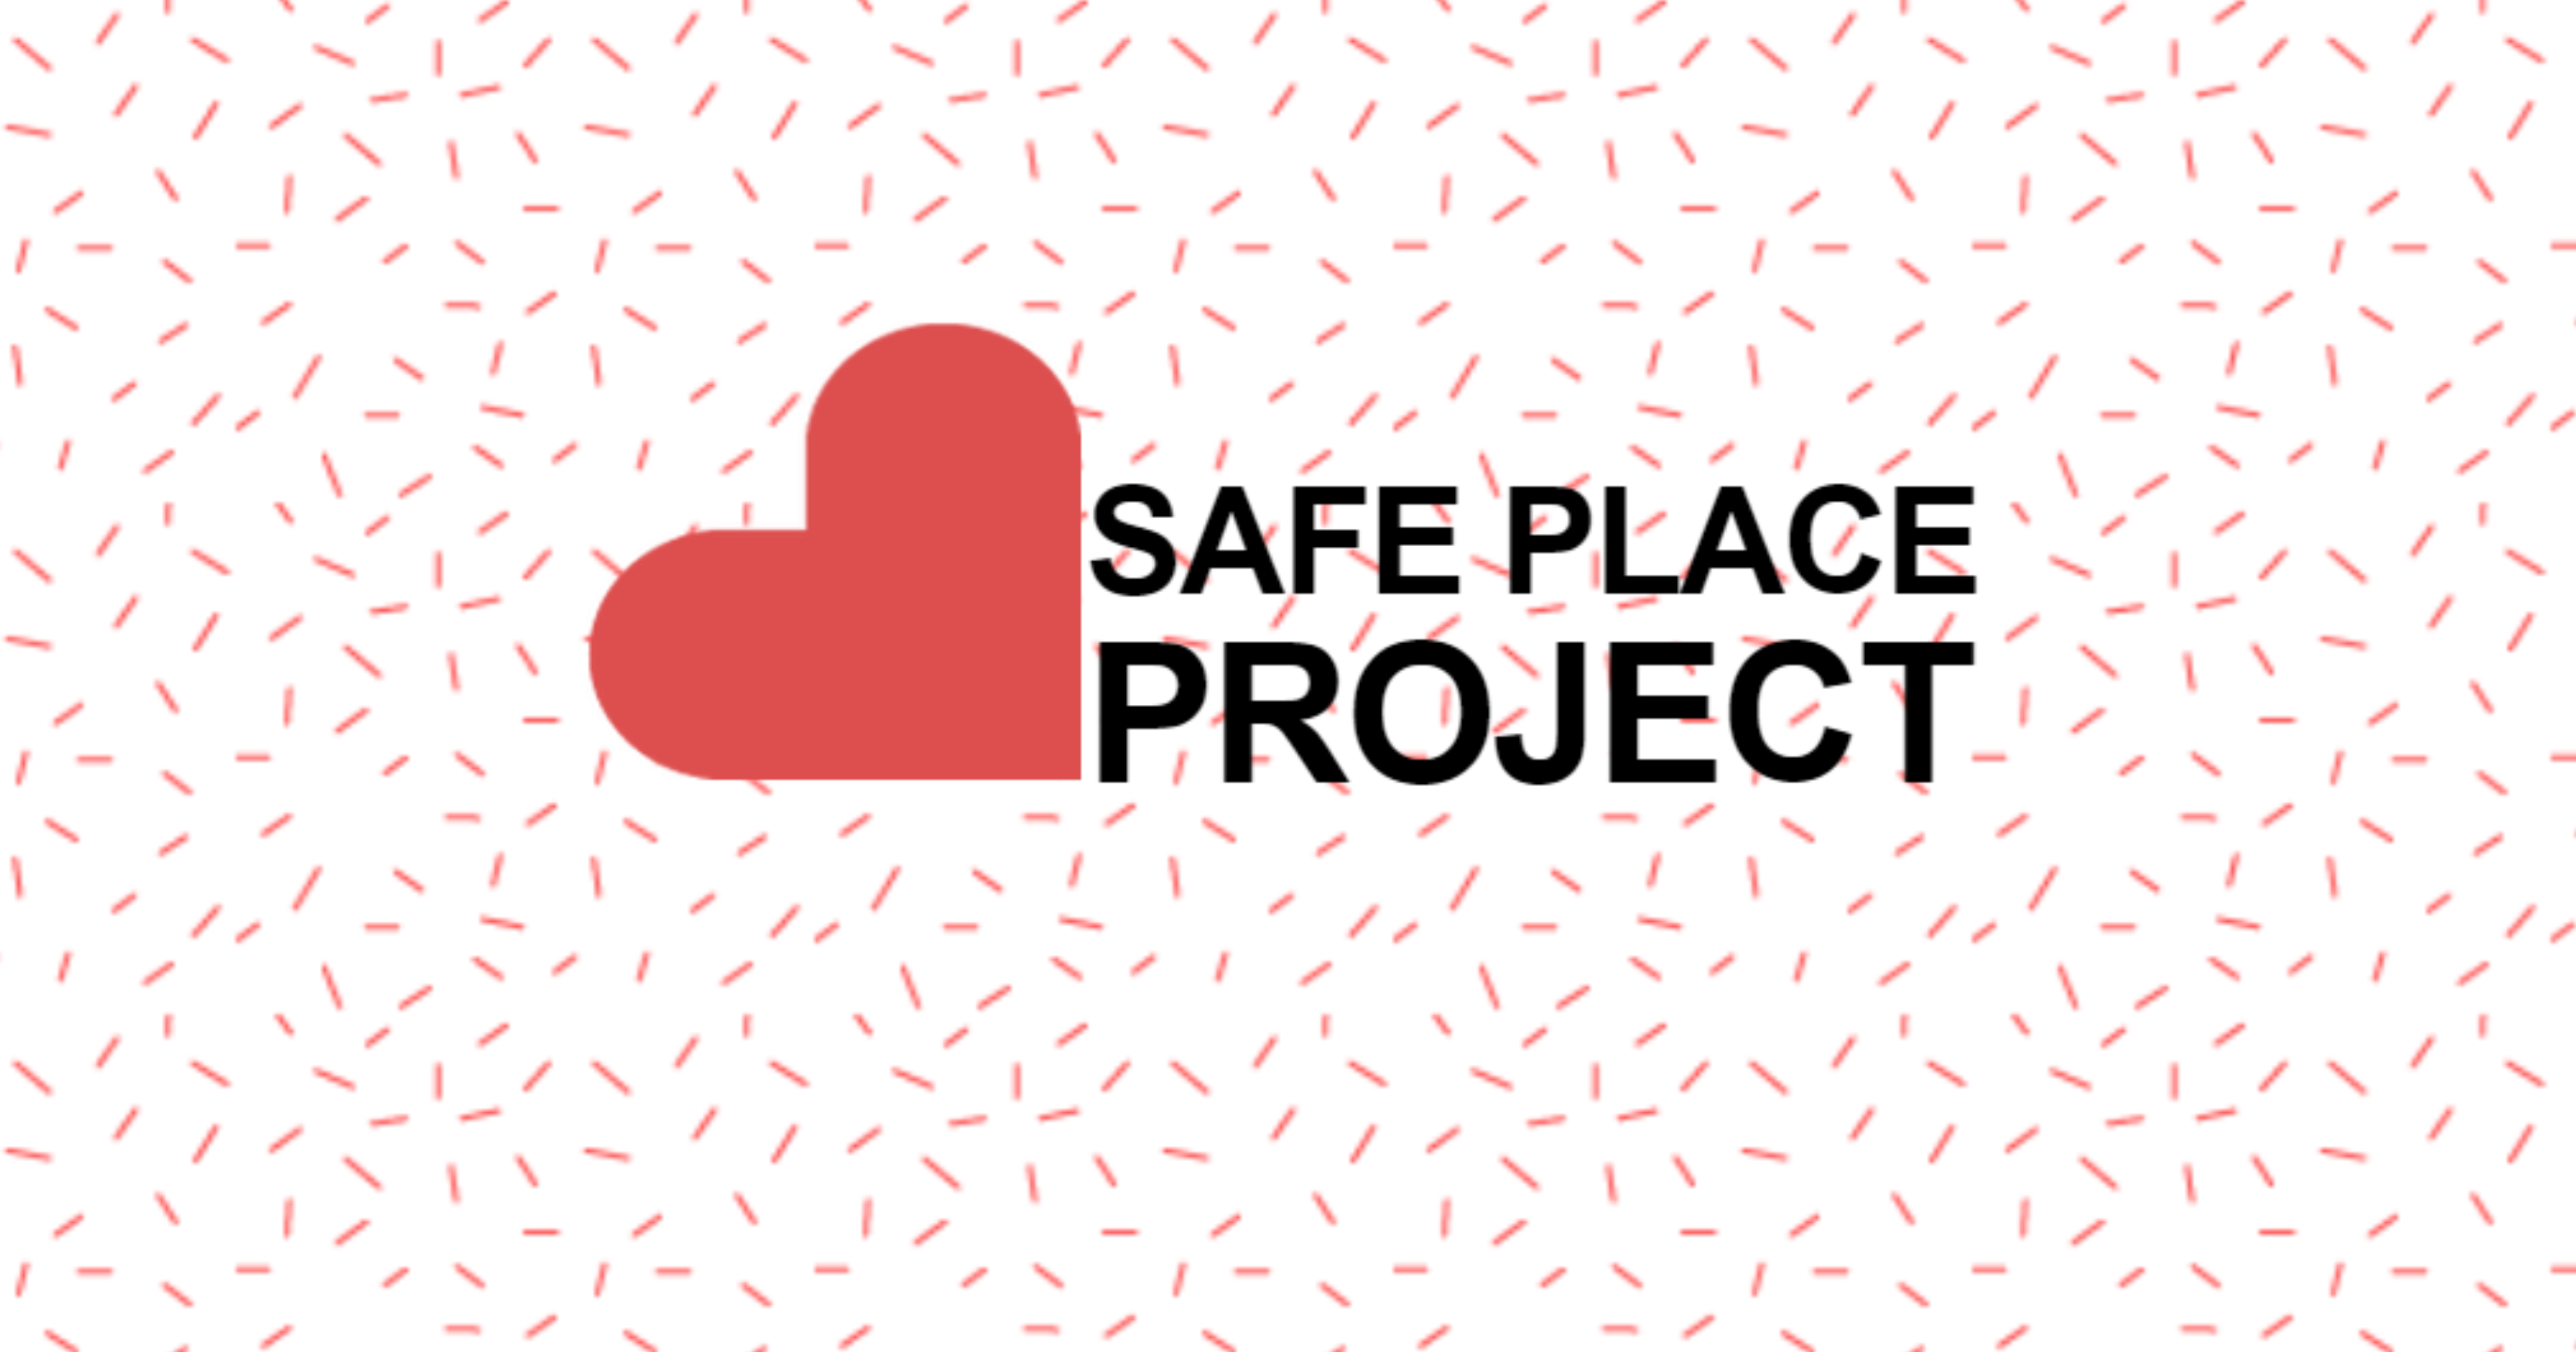 Indiana L Safe Place Project